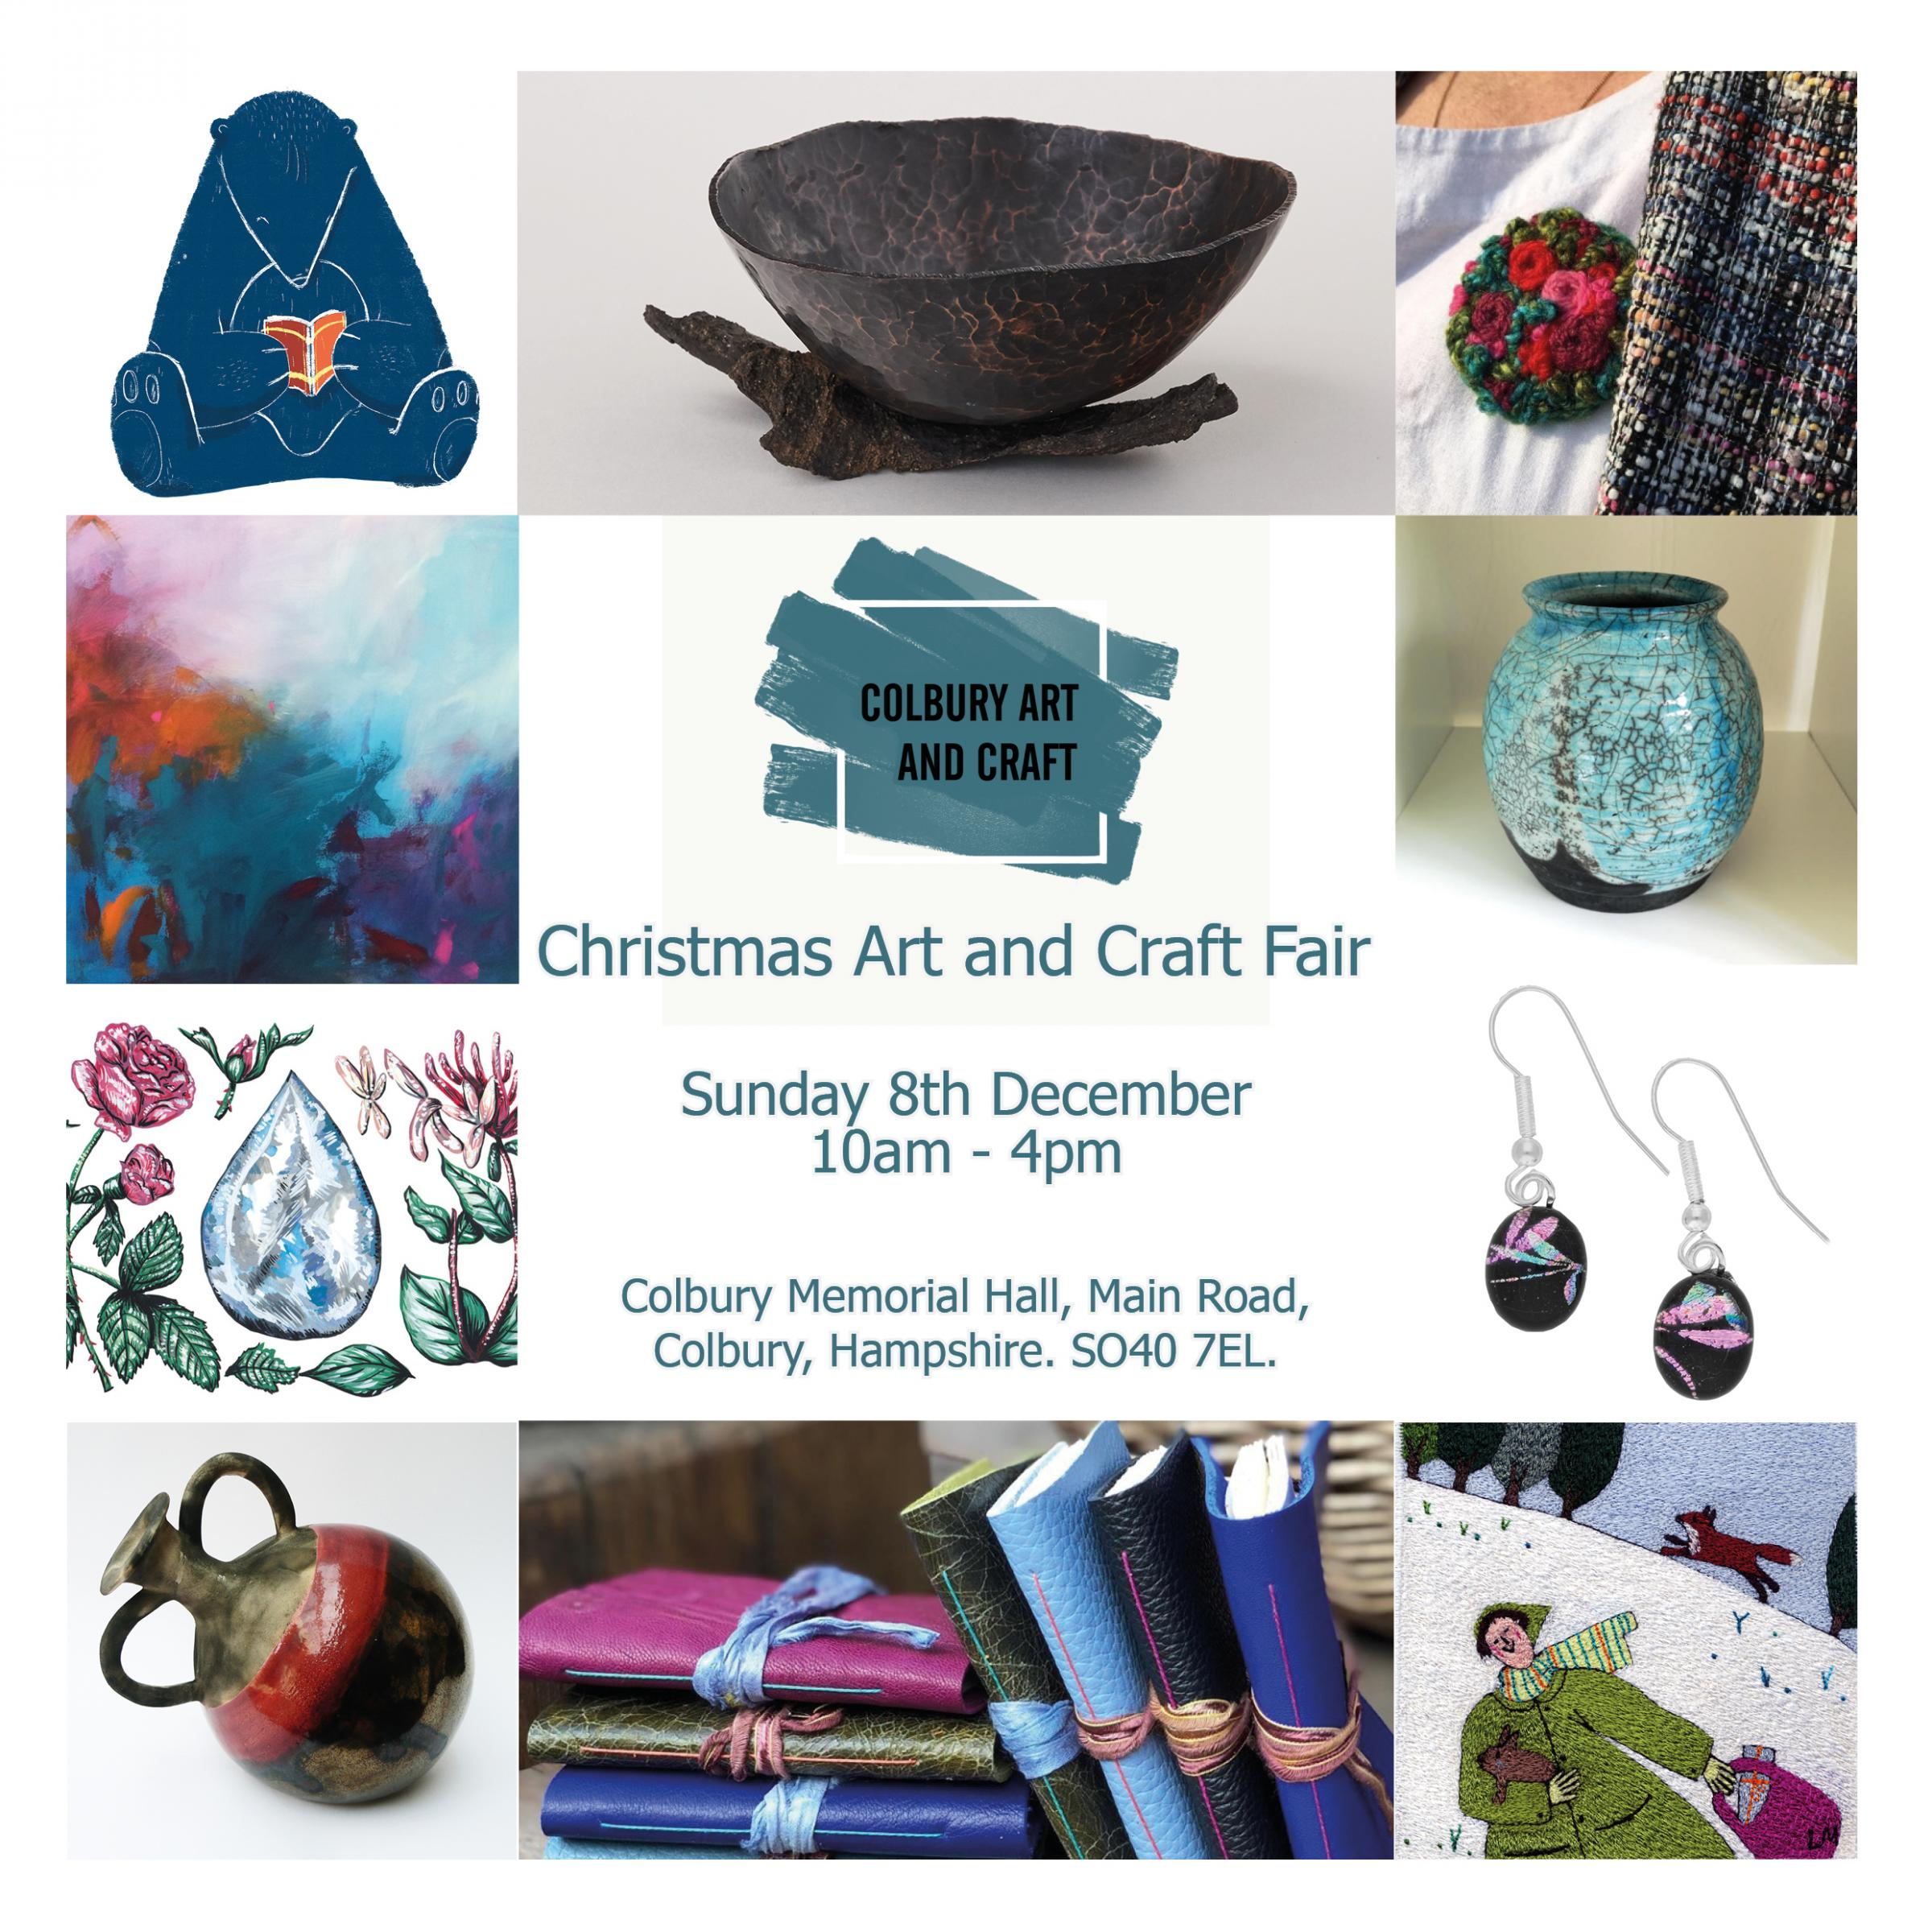 Christmas Art and Craft Fair